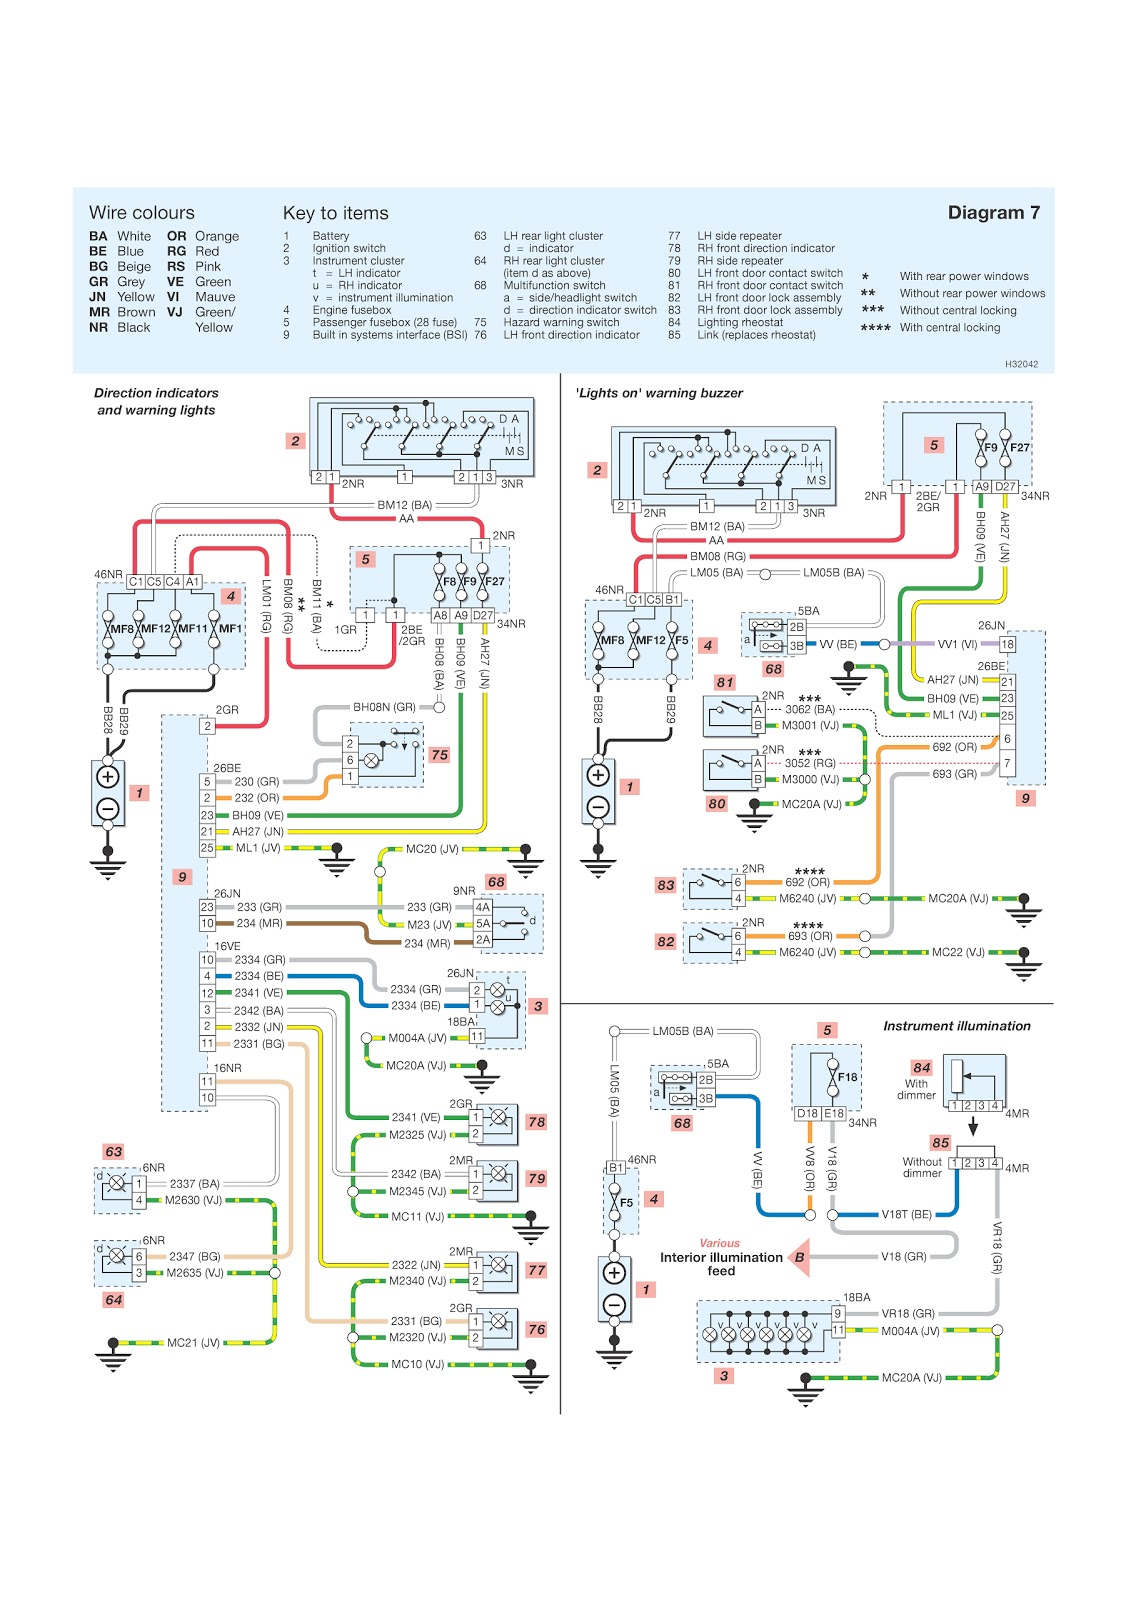 Peugeot 206 Wiring Schematic Interior lighting continued